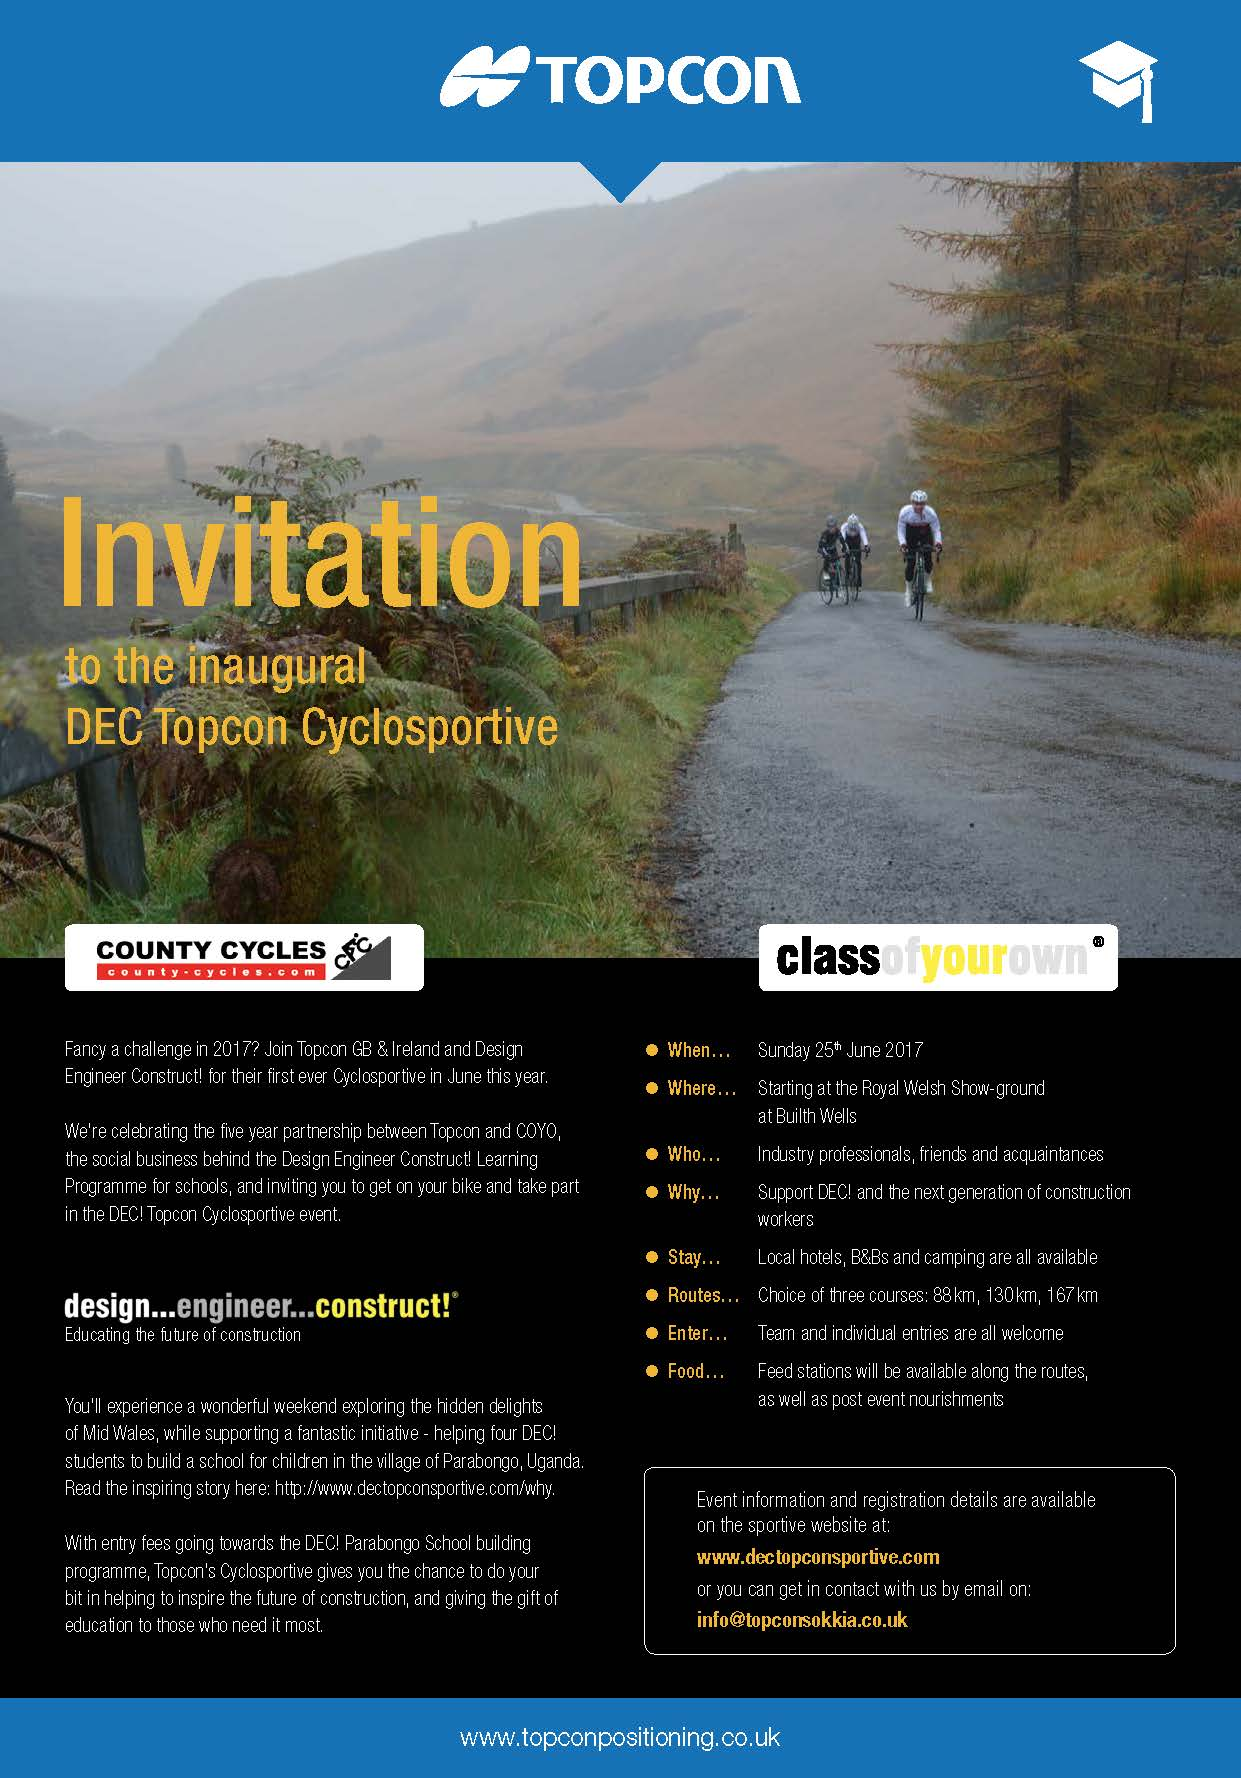 Inaugural DEC Topcon Cyclesportive, Sunday 25th June 2017